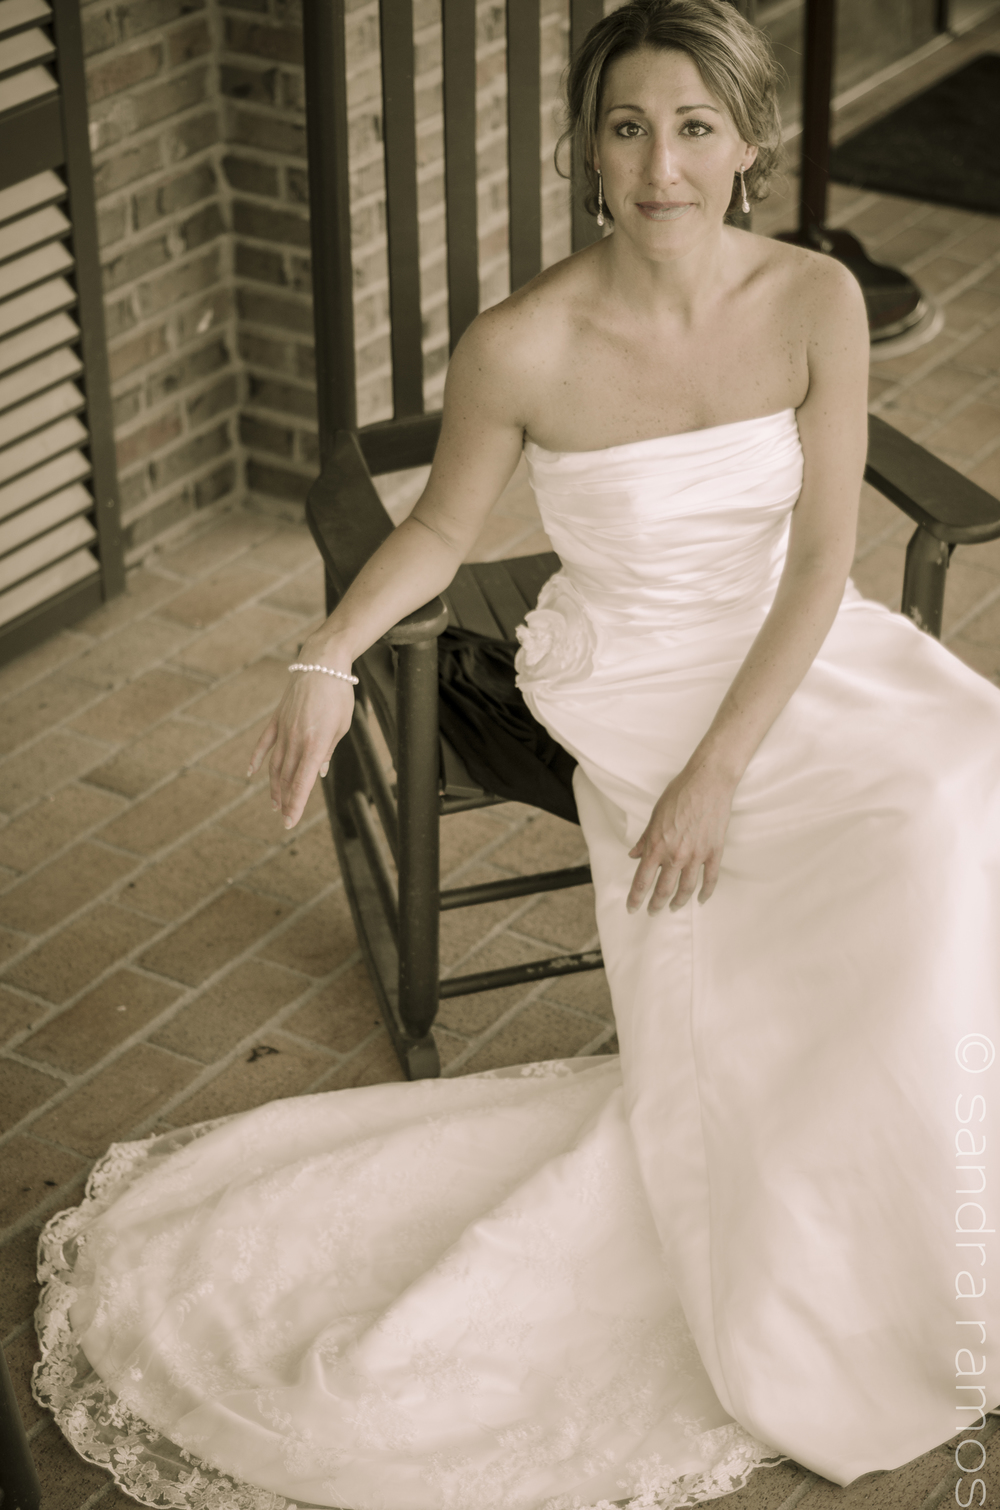 mcveigh_wedding10.jpg